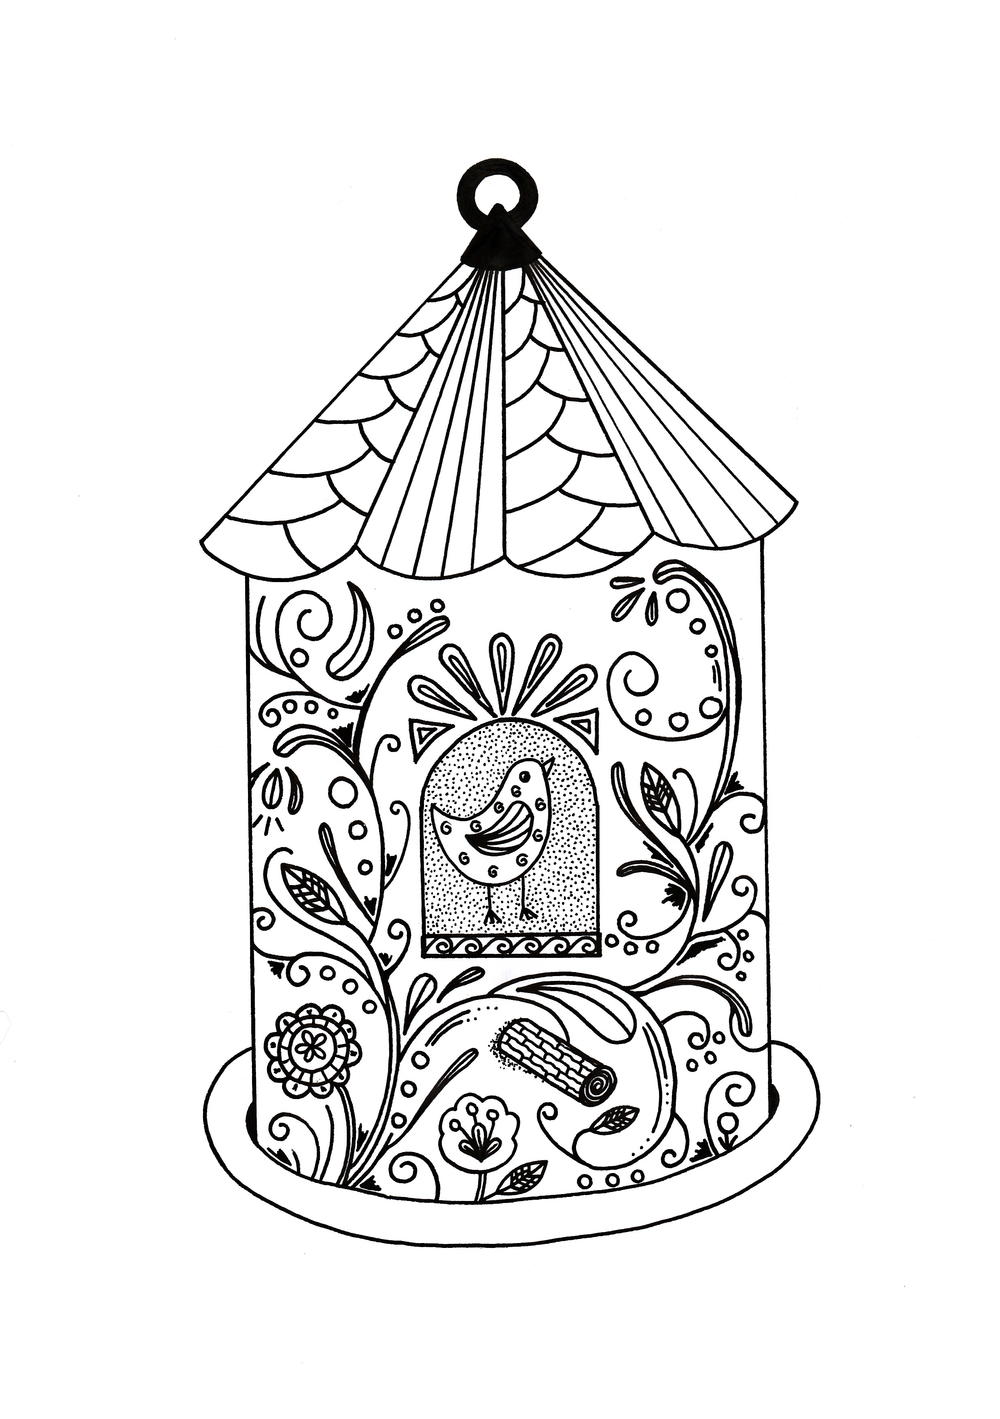 Whimsical bird house adult coloring page favecrafts com